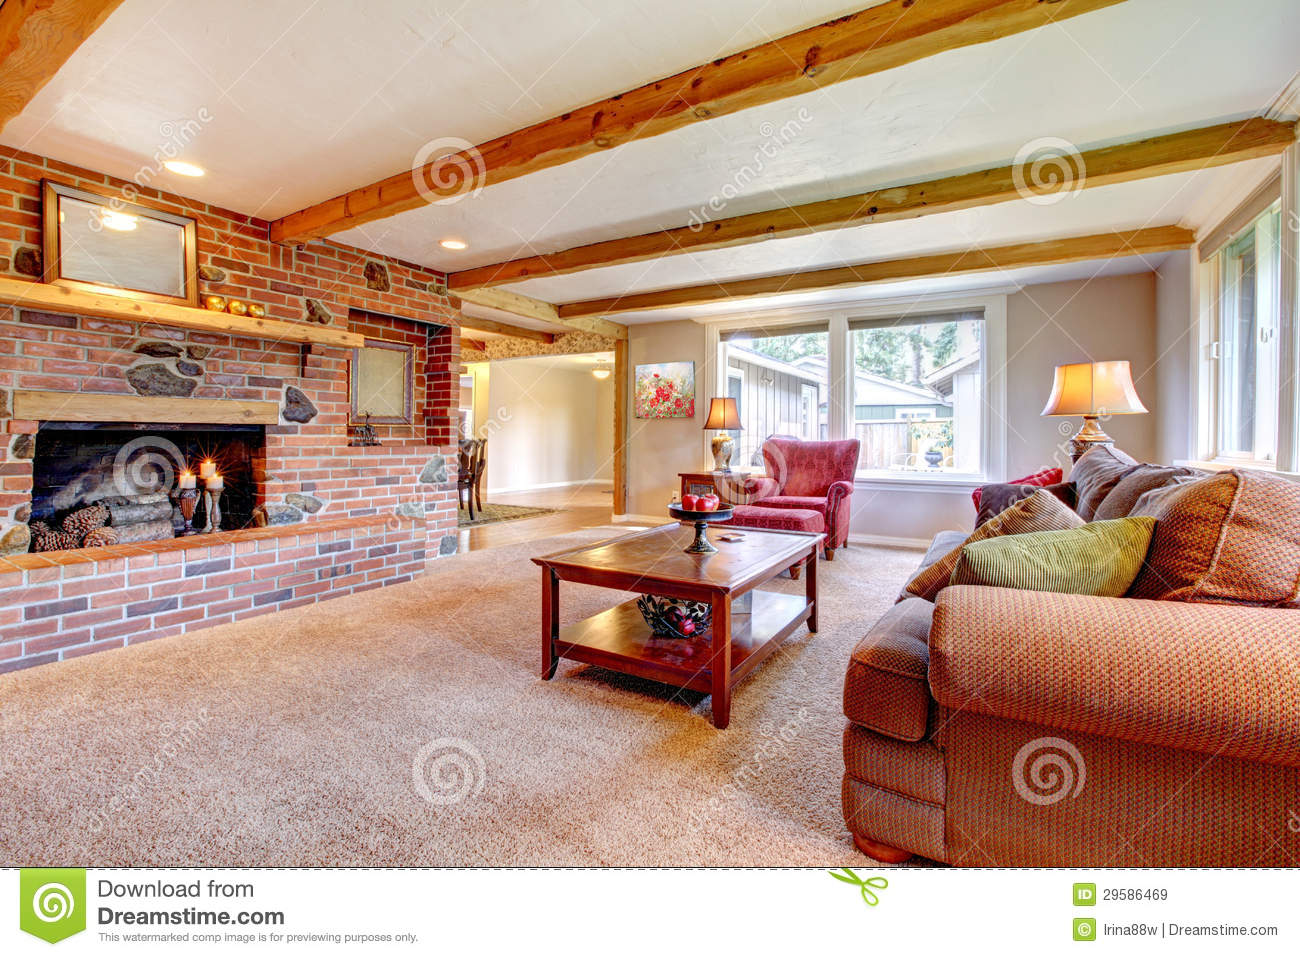 red couch living room photos round table for corner of interior with brick fireplace, wood beams and ...